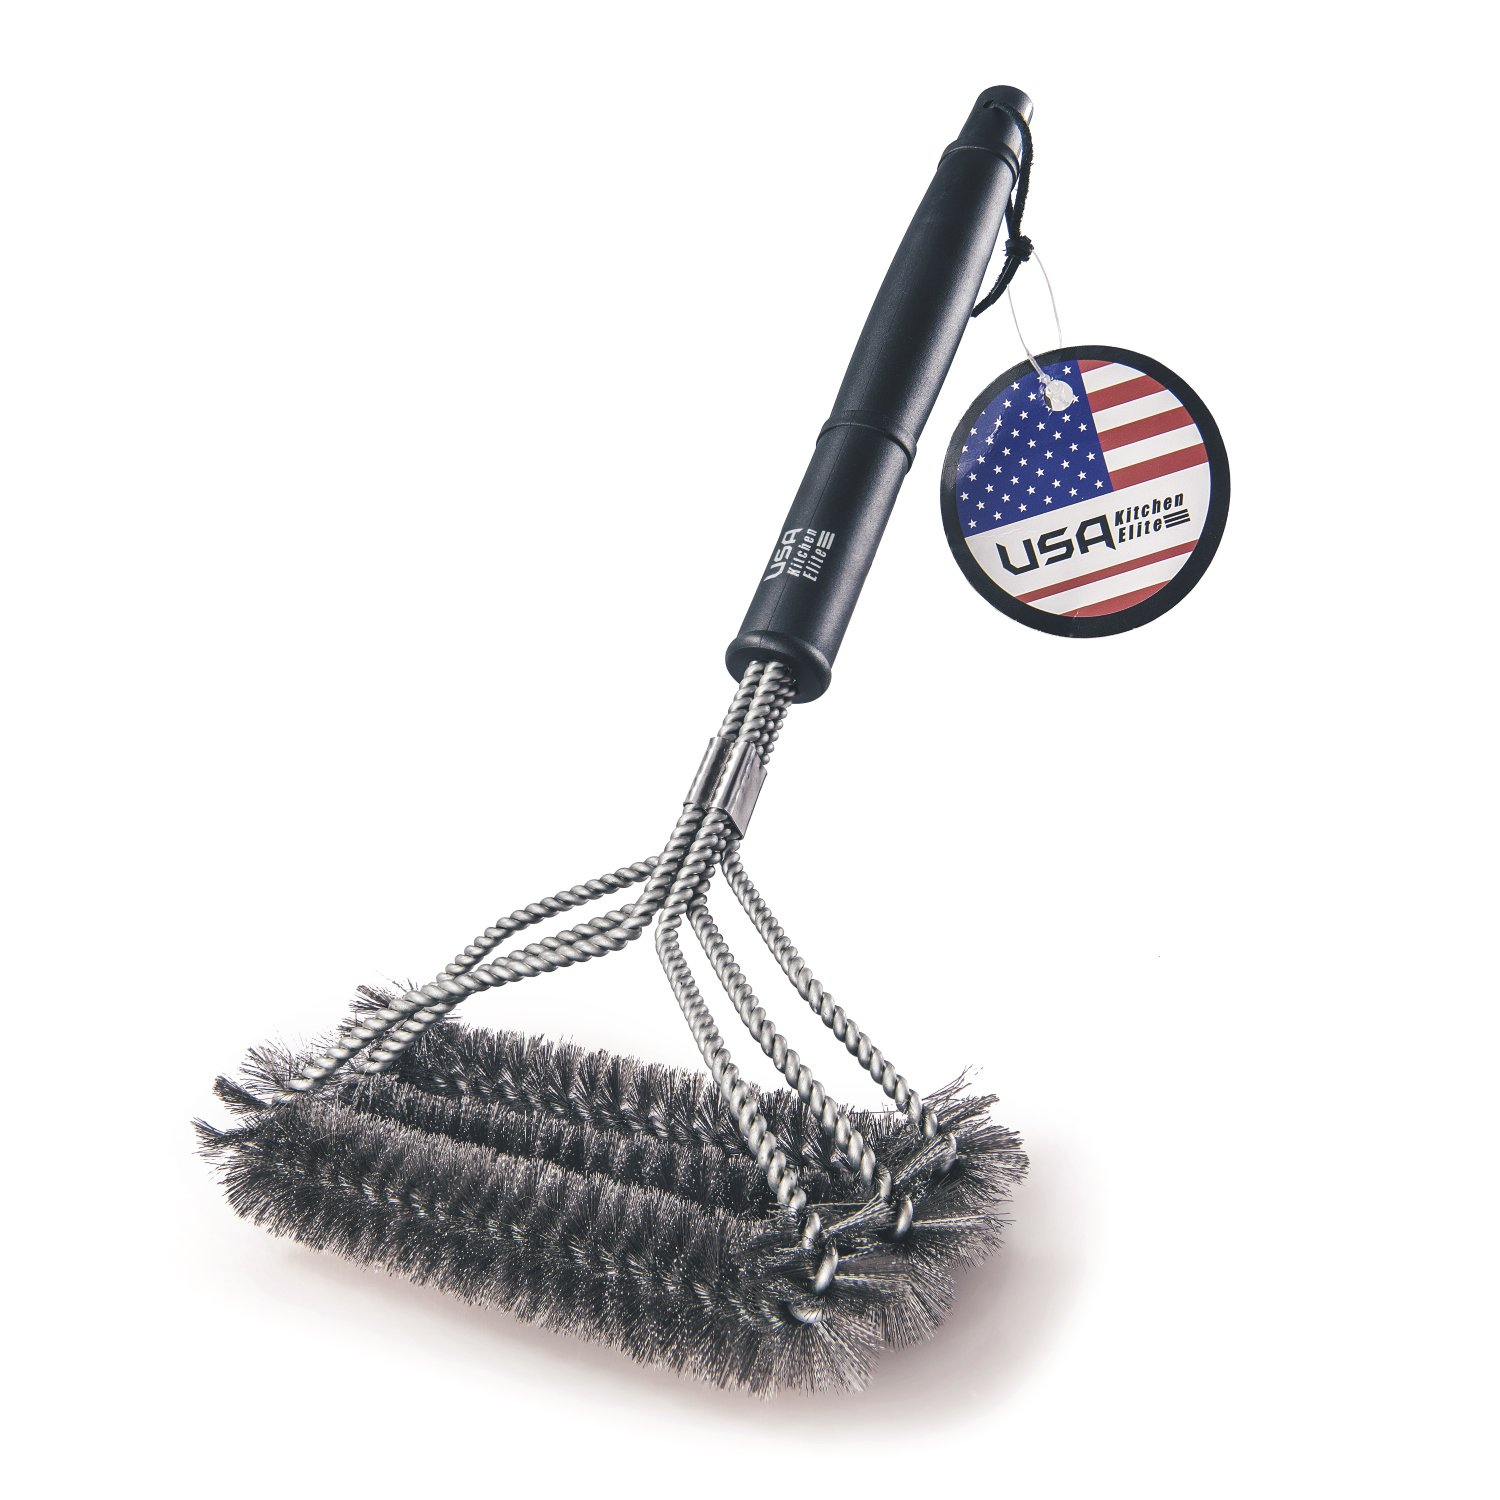 The Best Grill Brush Reviews & Buying Guide Top 4 Reviewed